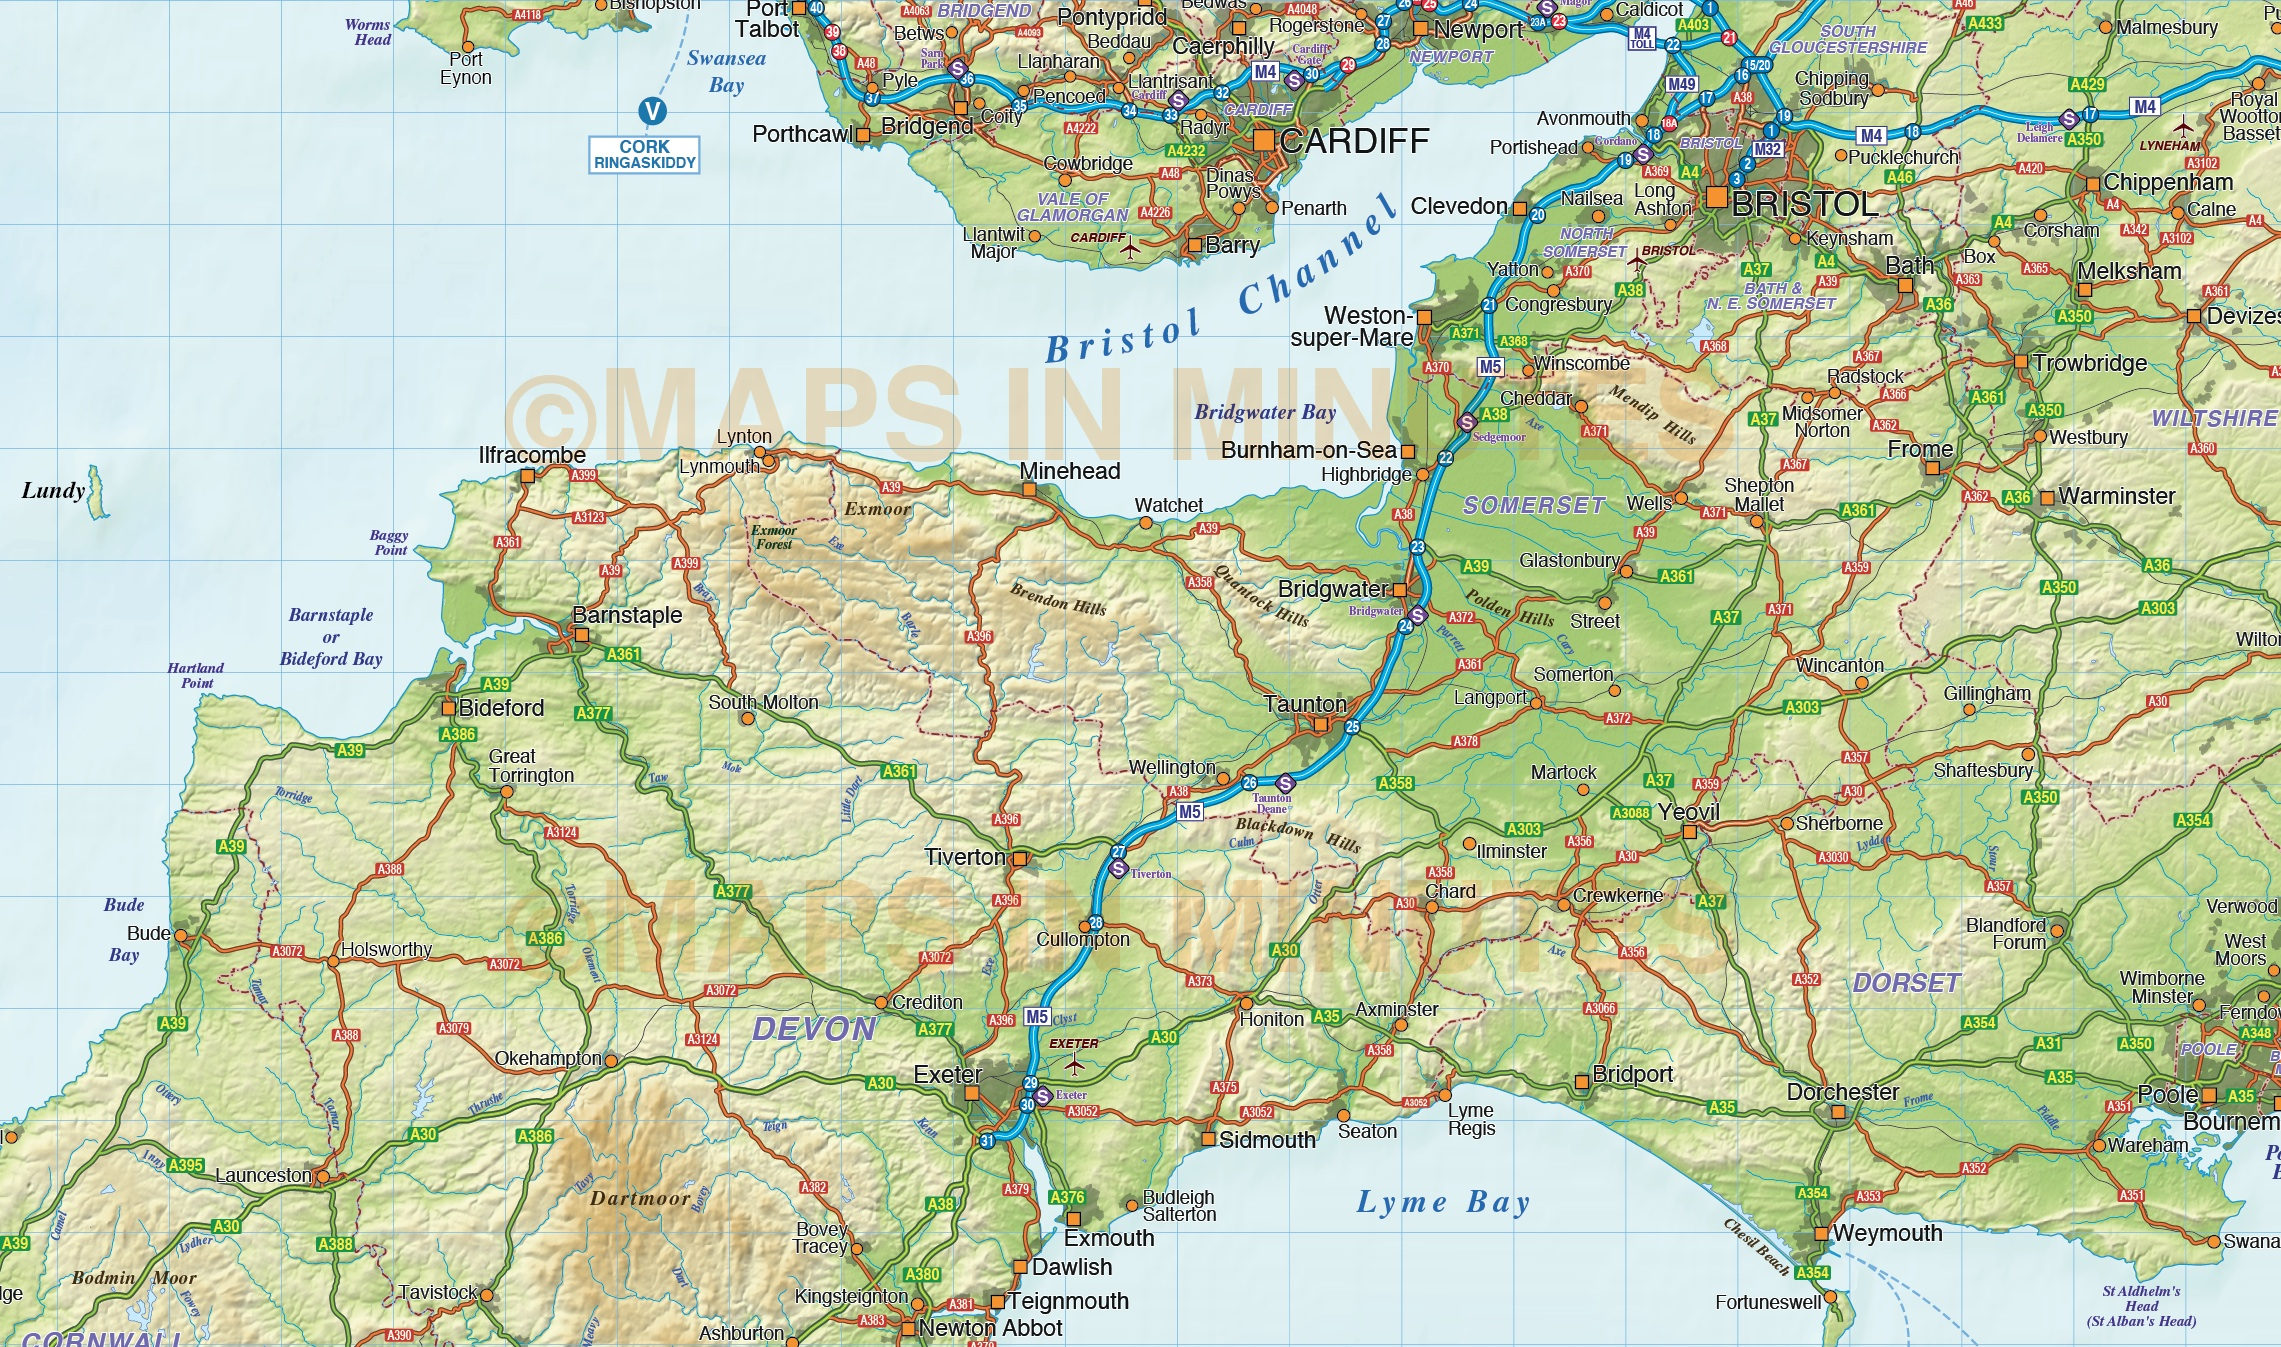 south west england county road  u0026 rail map with regular relief  1m scale in illustrator vector format